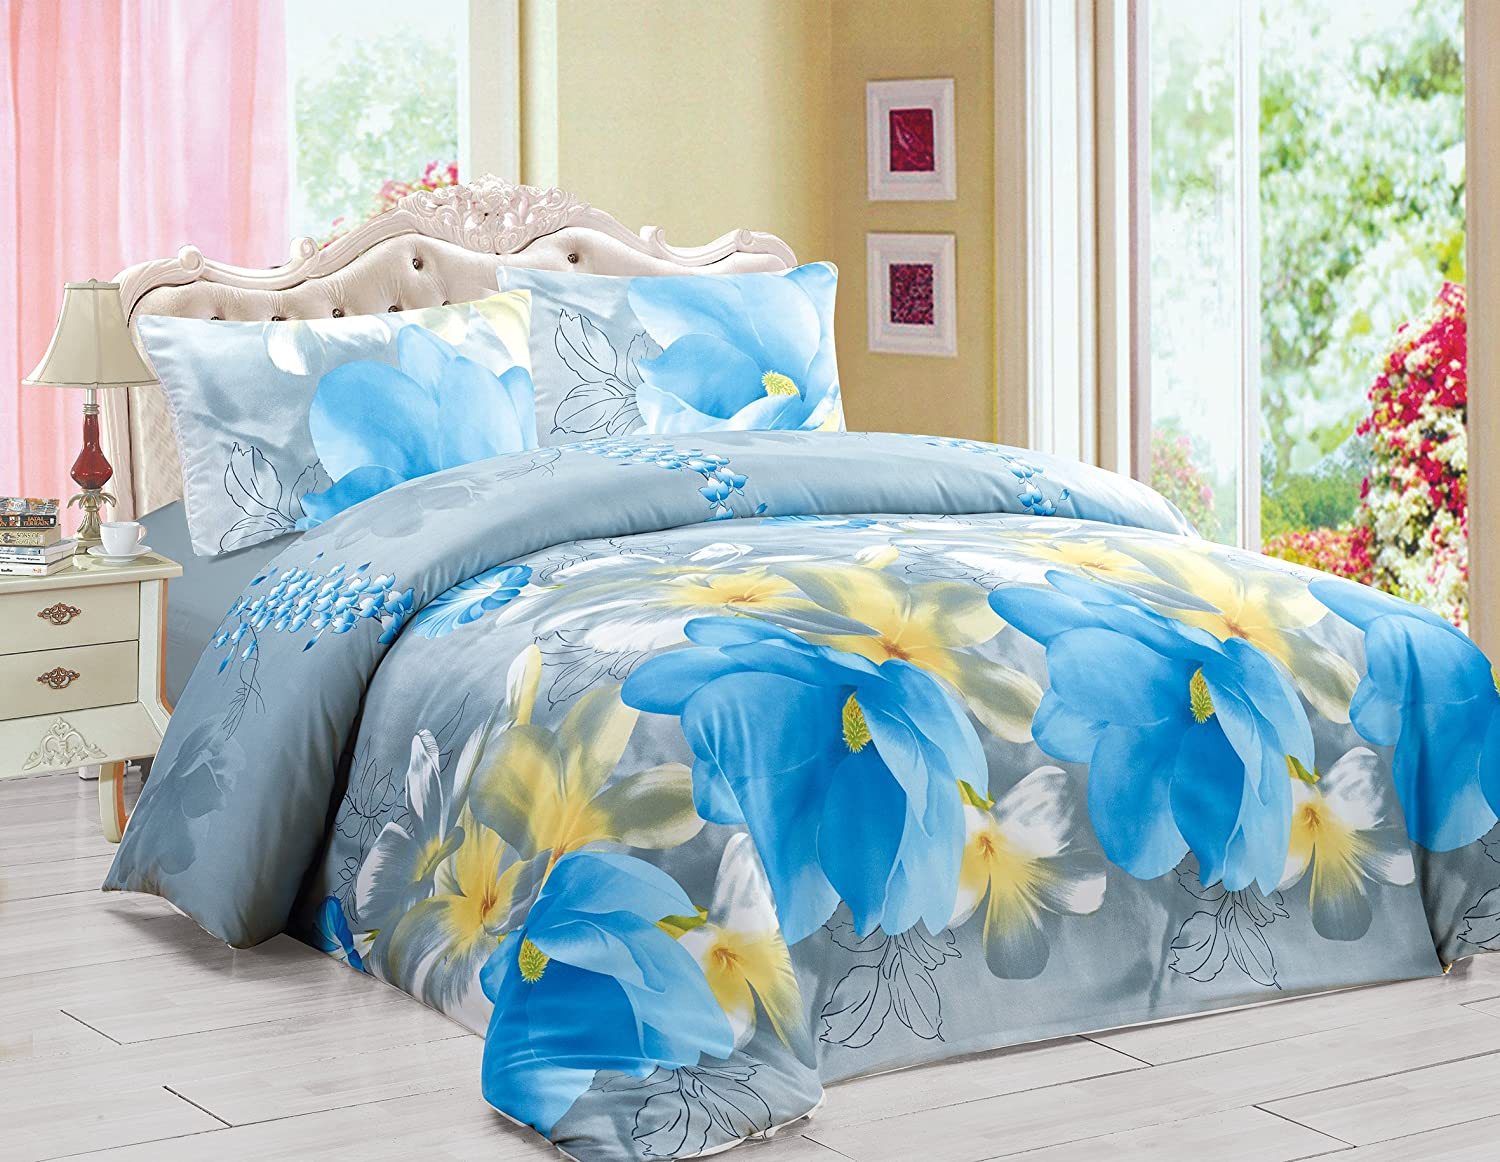 3D Effect Duvet Quilt Cover Bedding Set with Fitted Sheet + Pillow Cases Floral (BONNIE, King)